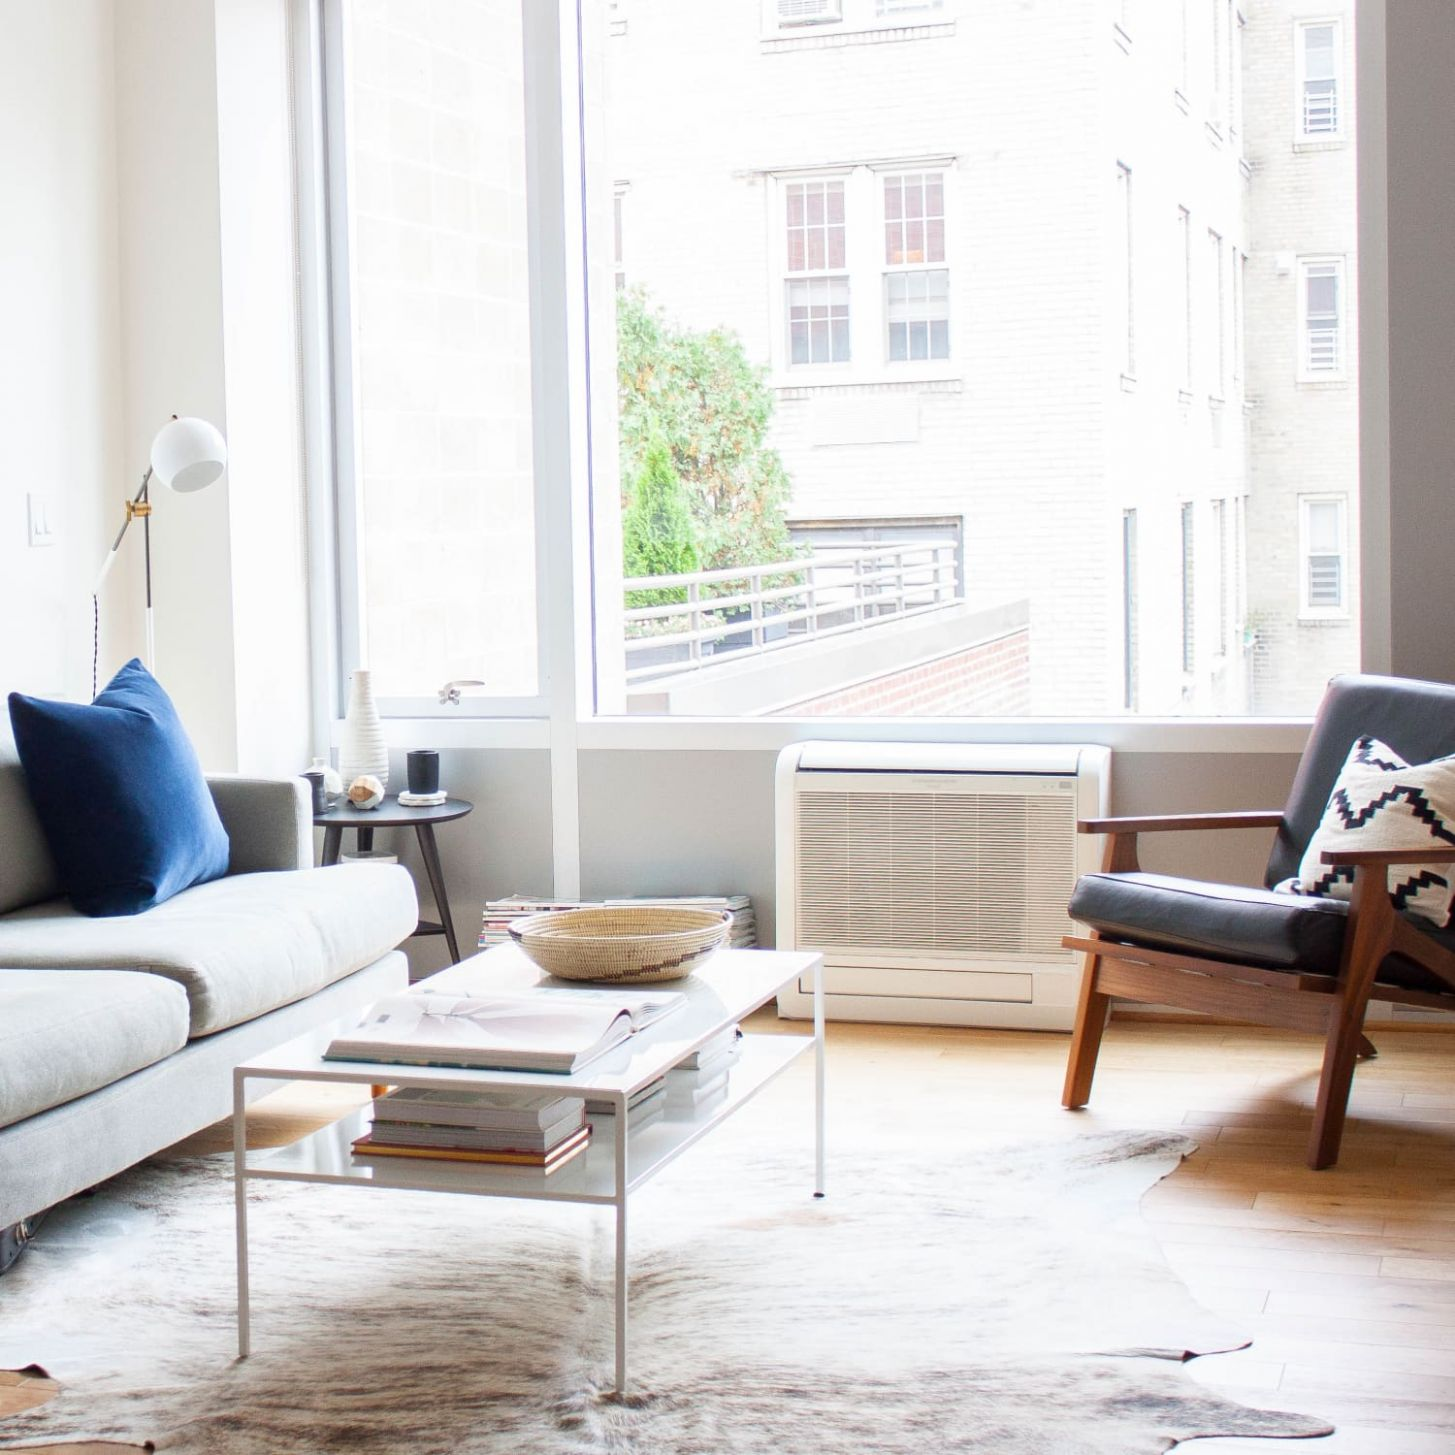 8 Small Living Room Decorating & Design Ideas - How to Decorate a ..